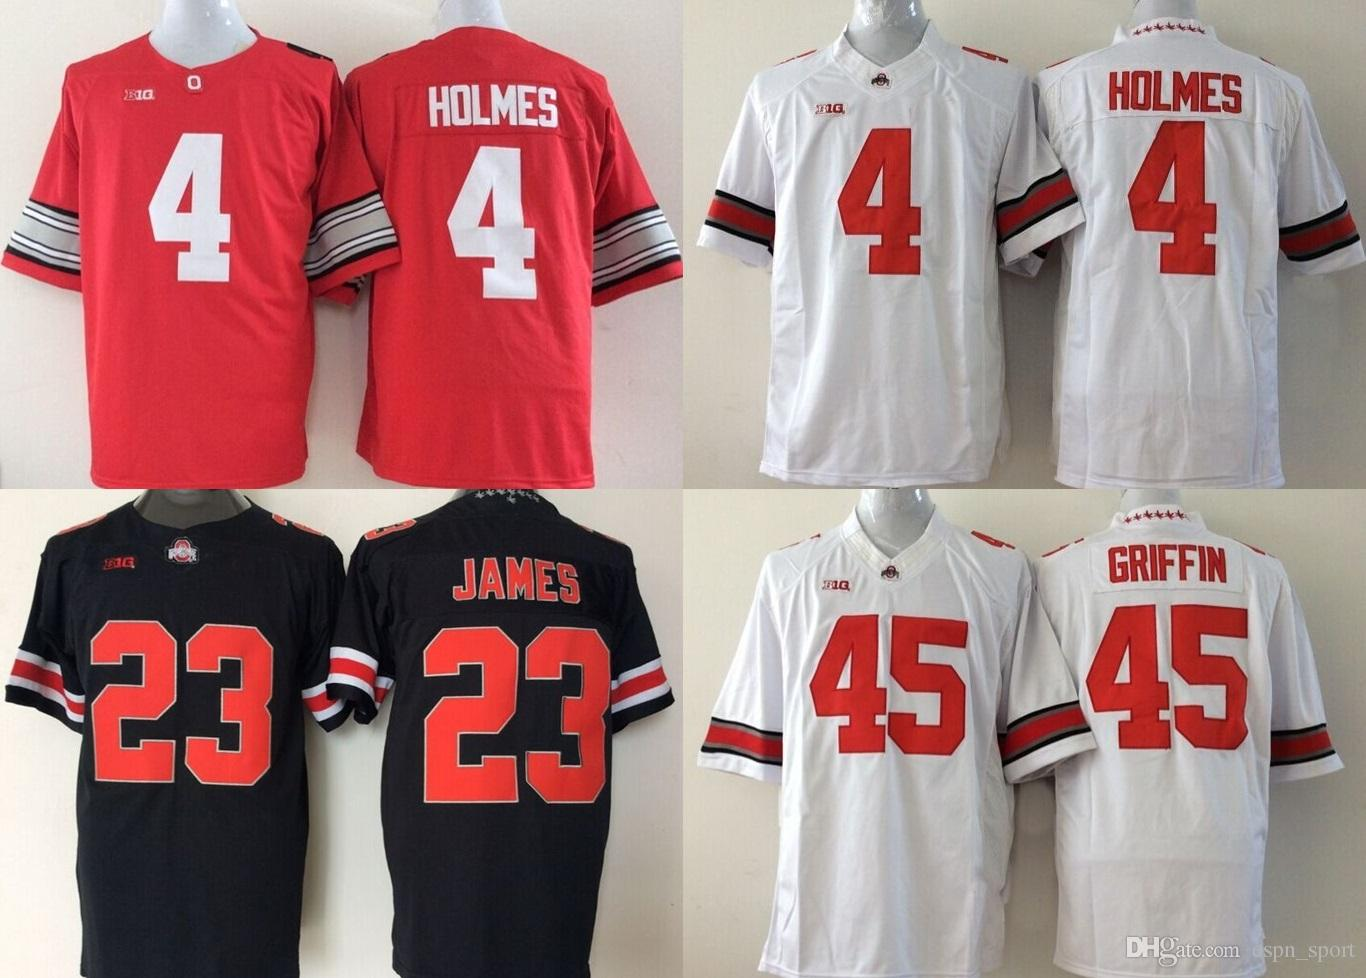 best sneakers f5e82 76ec9 Factory Outlet- Ohio State Buckeyes 4 Holmes 23 Lebron James 45 Archie  Griffin College Football Jerseys Size:S-3XL, Mix order Sport Jersey